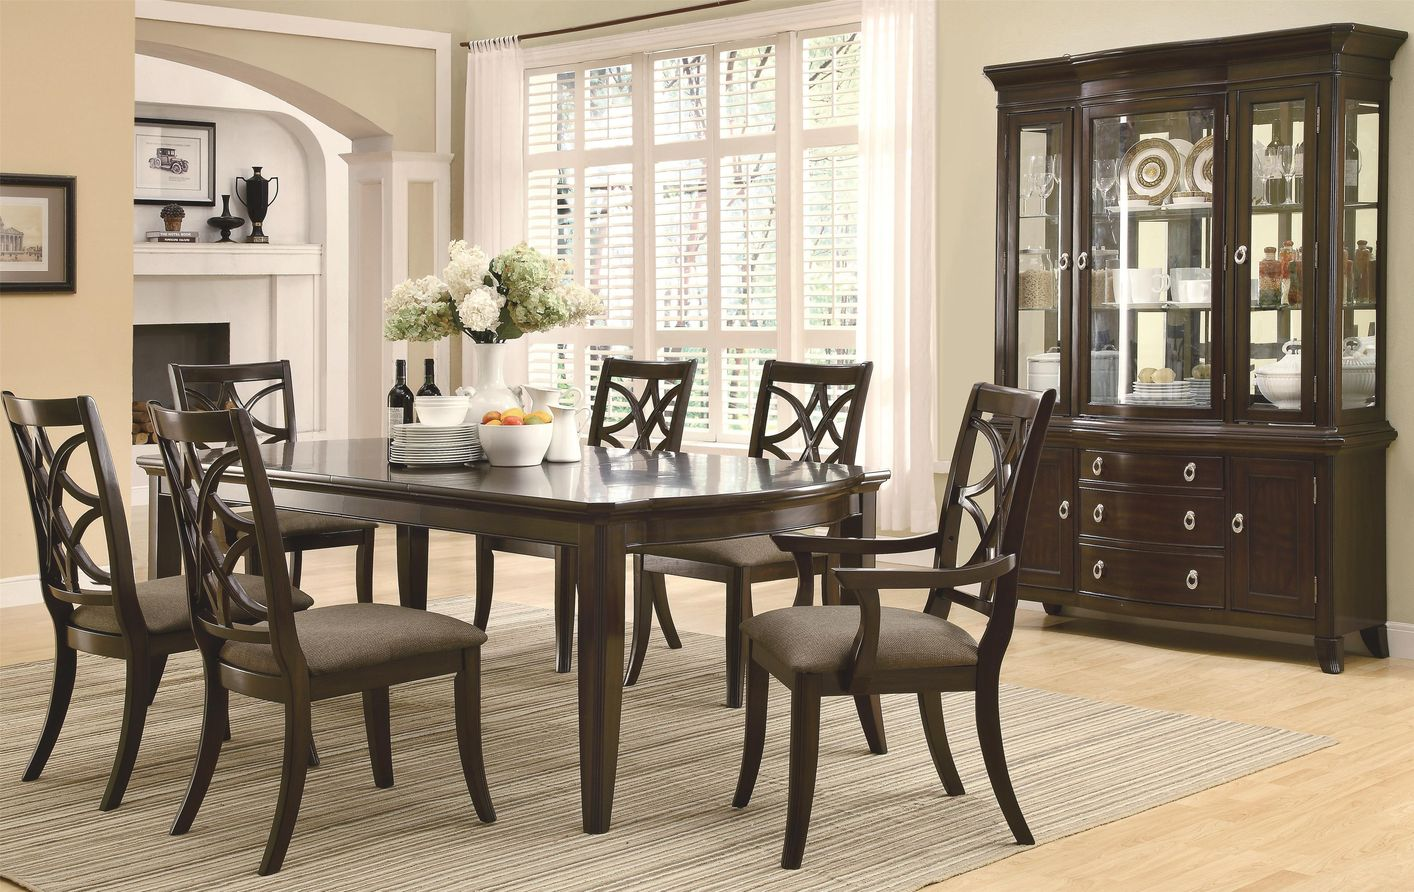 Coaster Meredith 103531 103532 103533 Brown Wood Dining